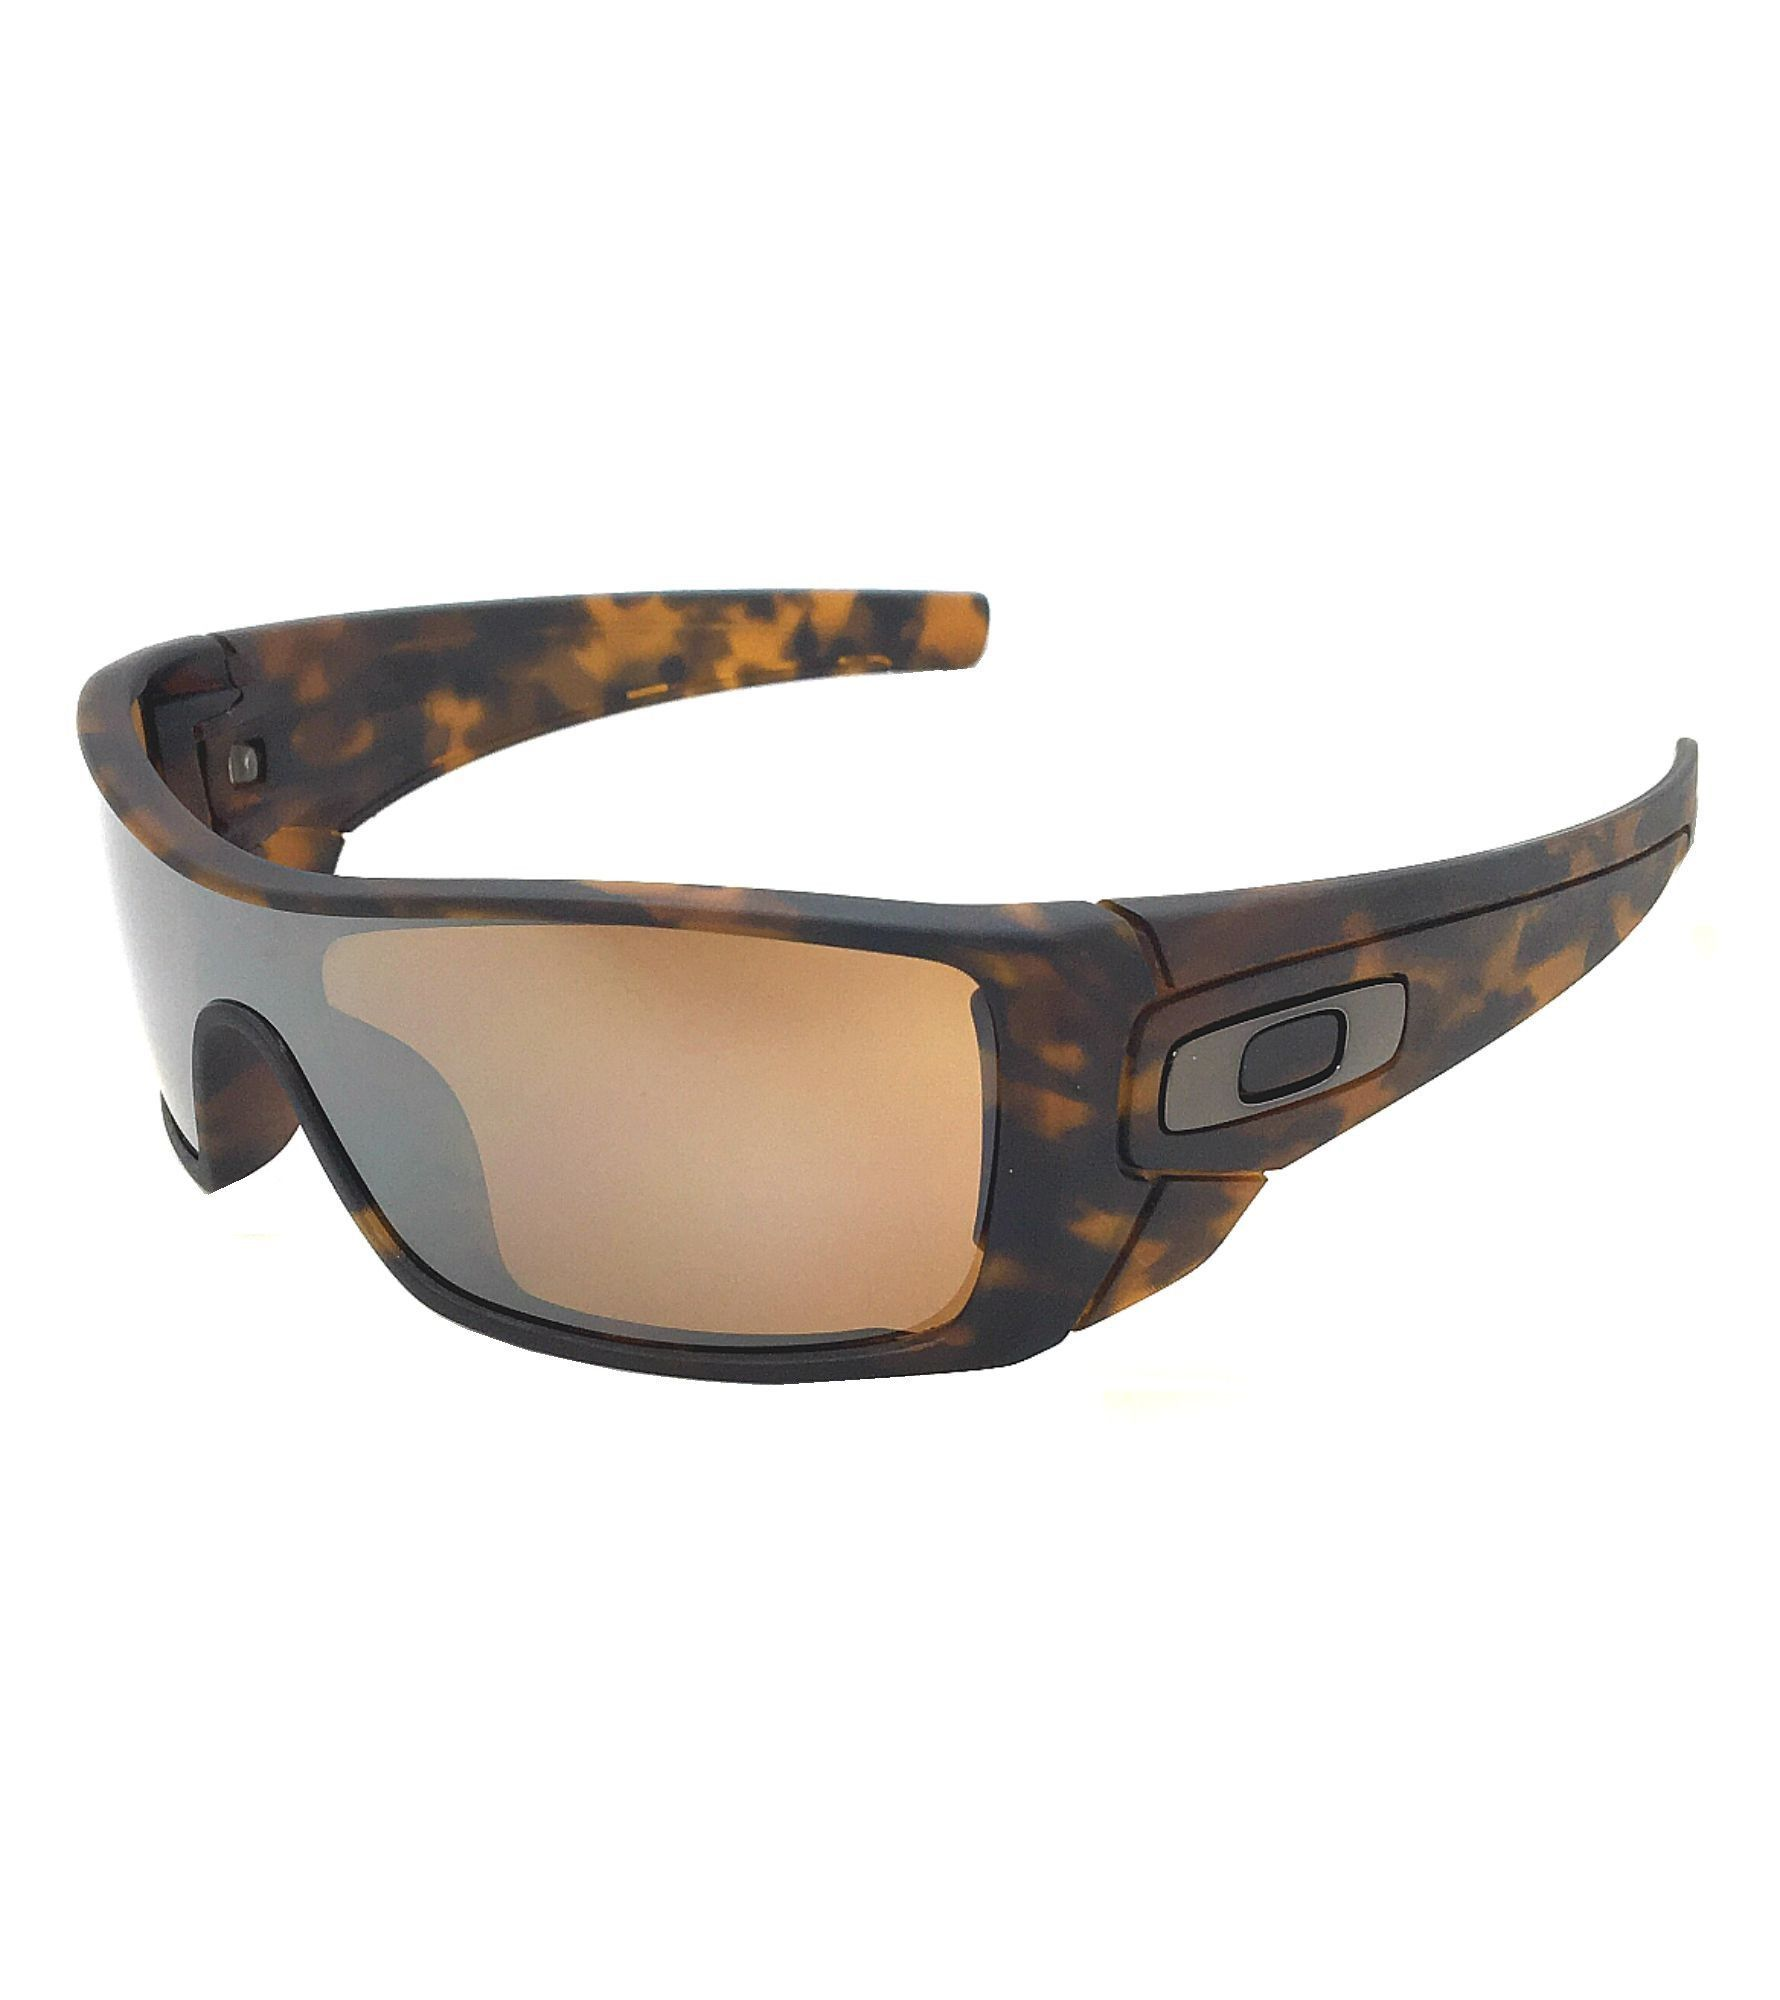 Oakley Batwolf 9101-53 Matte Tortoise / Tungsten Iridium Sunglasses